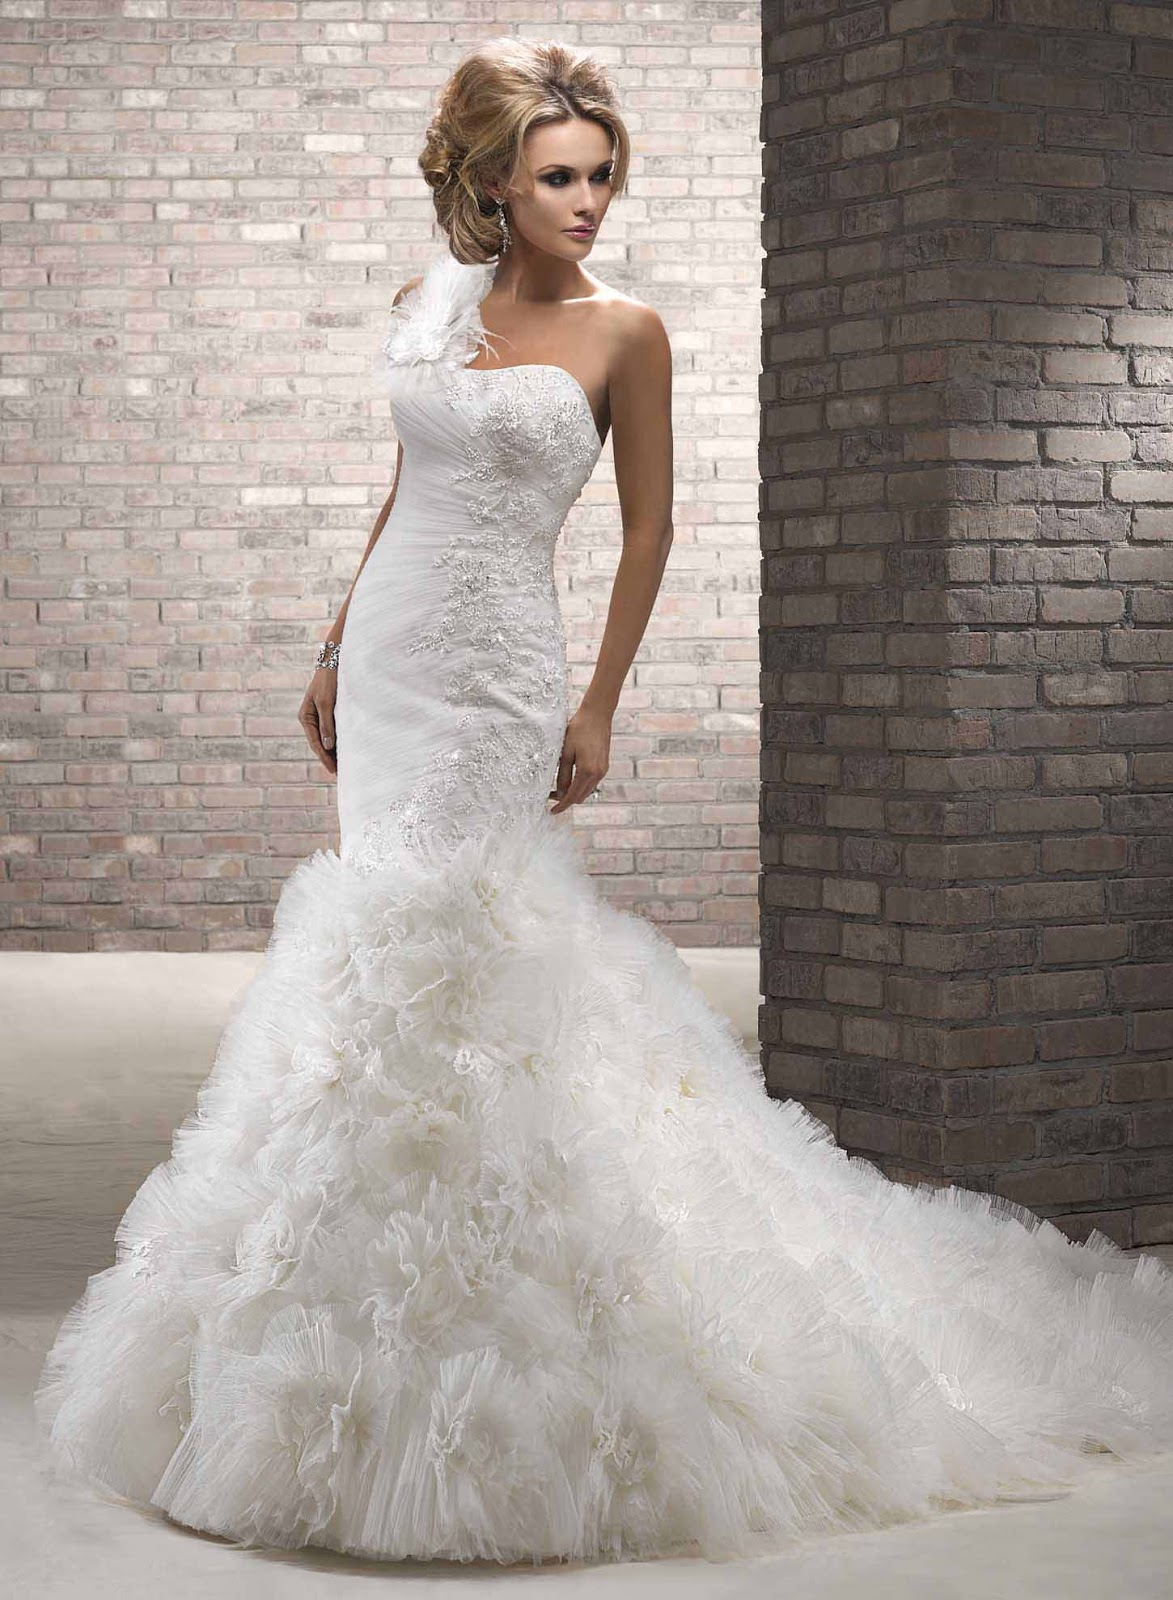 Mermaid Wedding Dresses With Bling And Ruffles Wallpaper